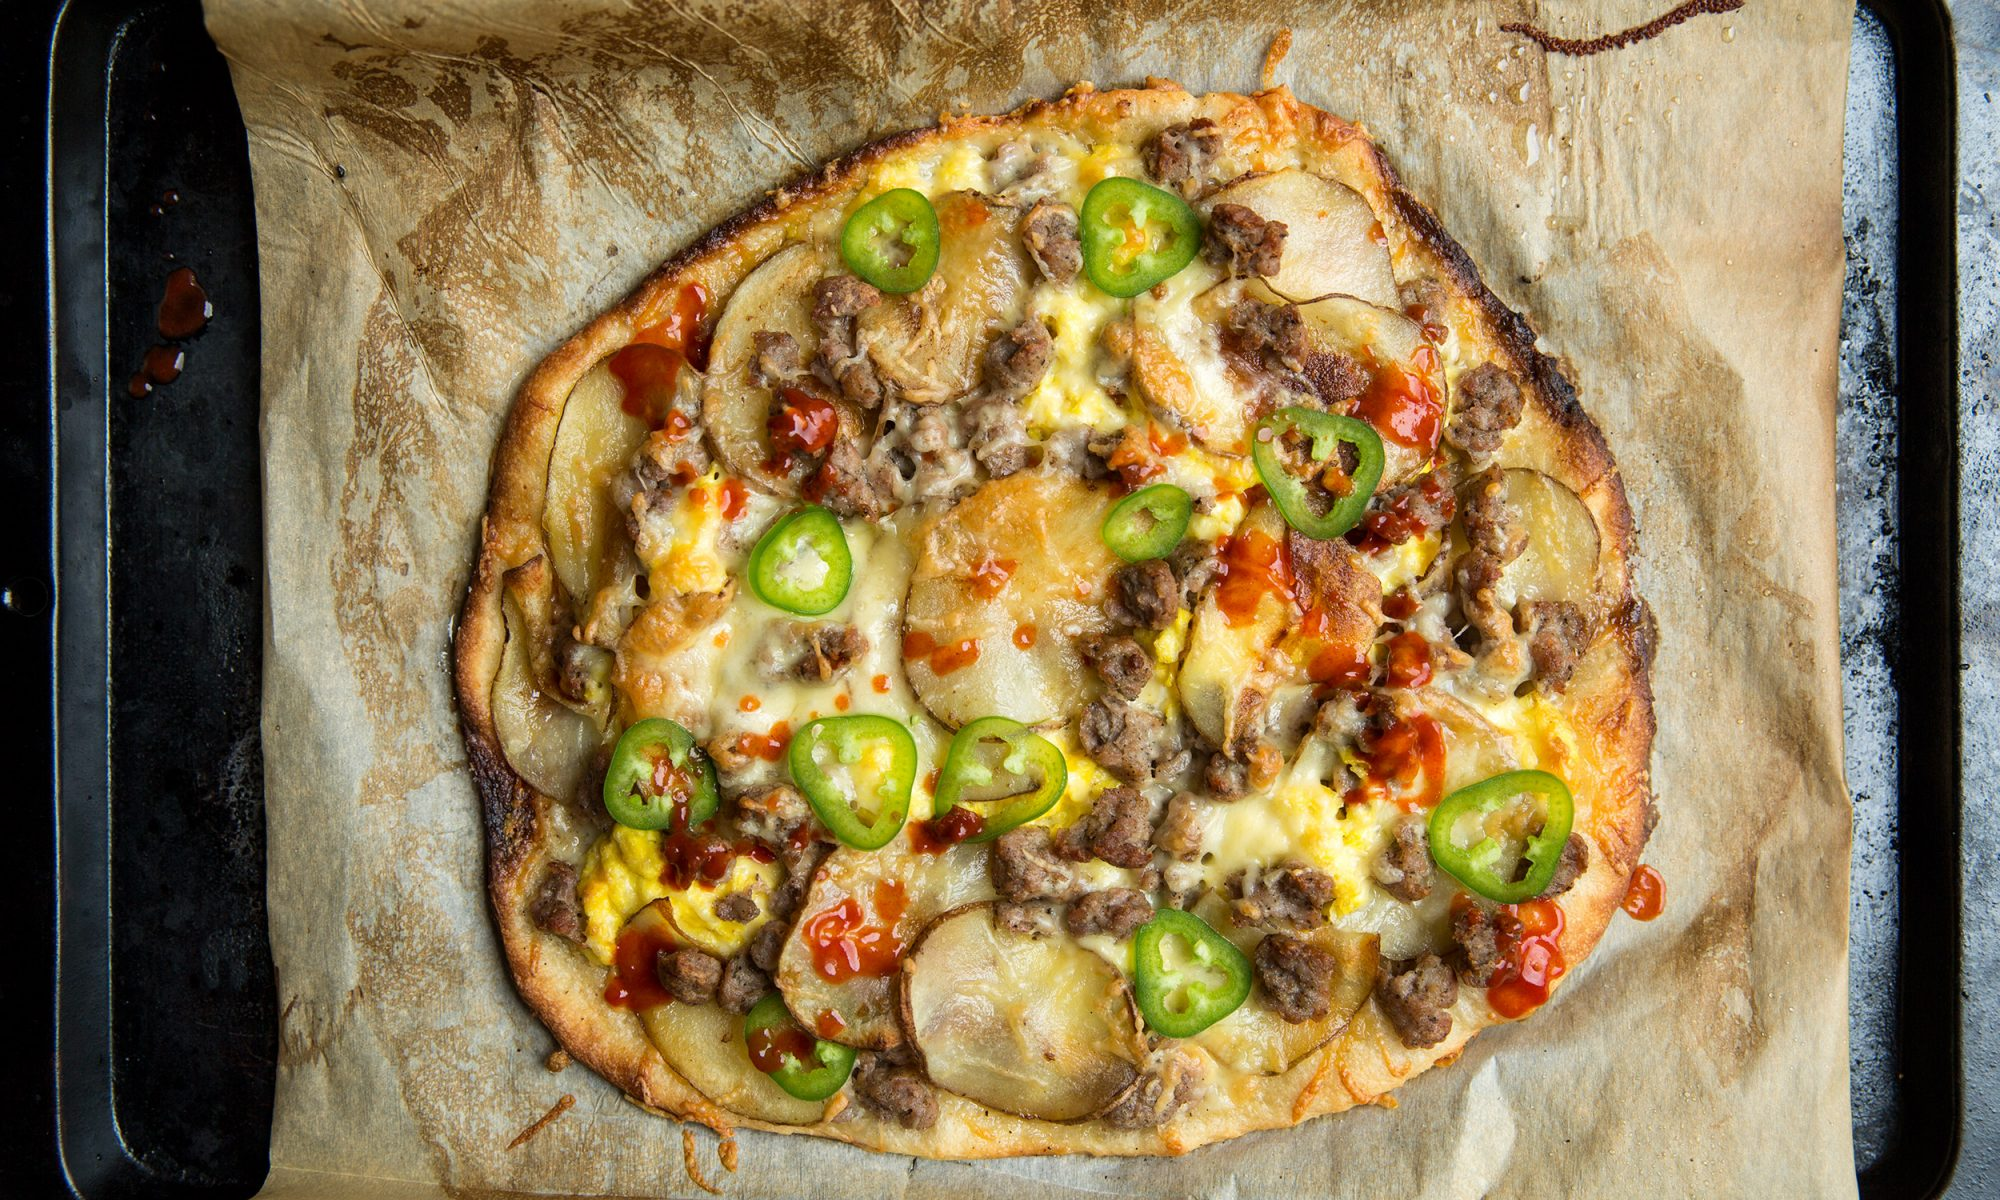 EC: Eat Pizza in the Morning Like a Grownup